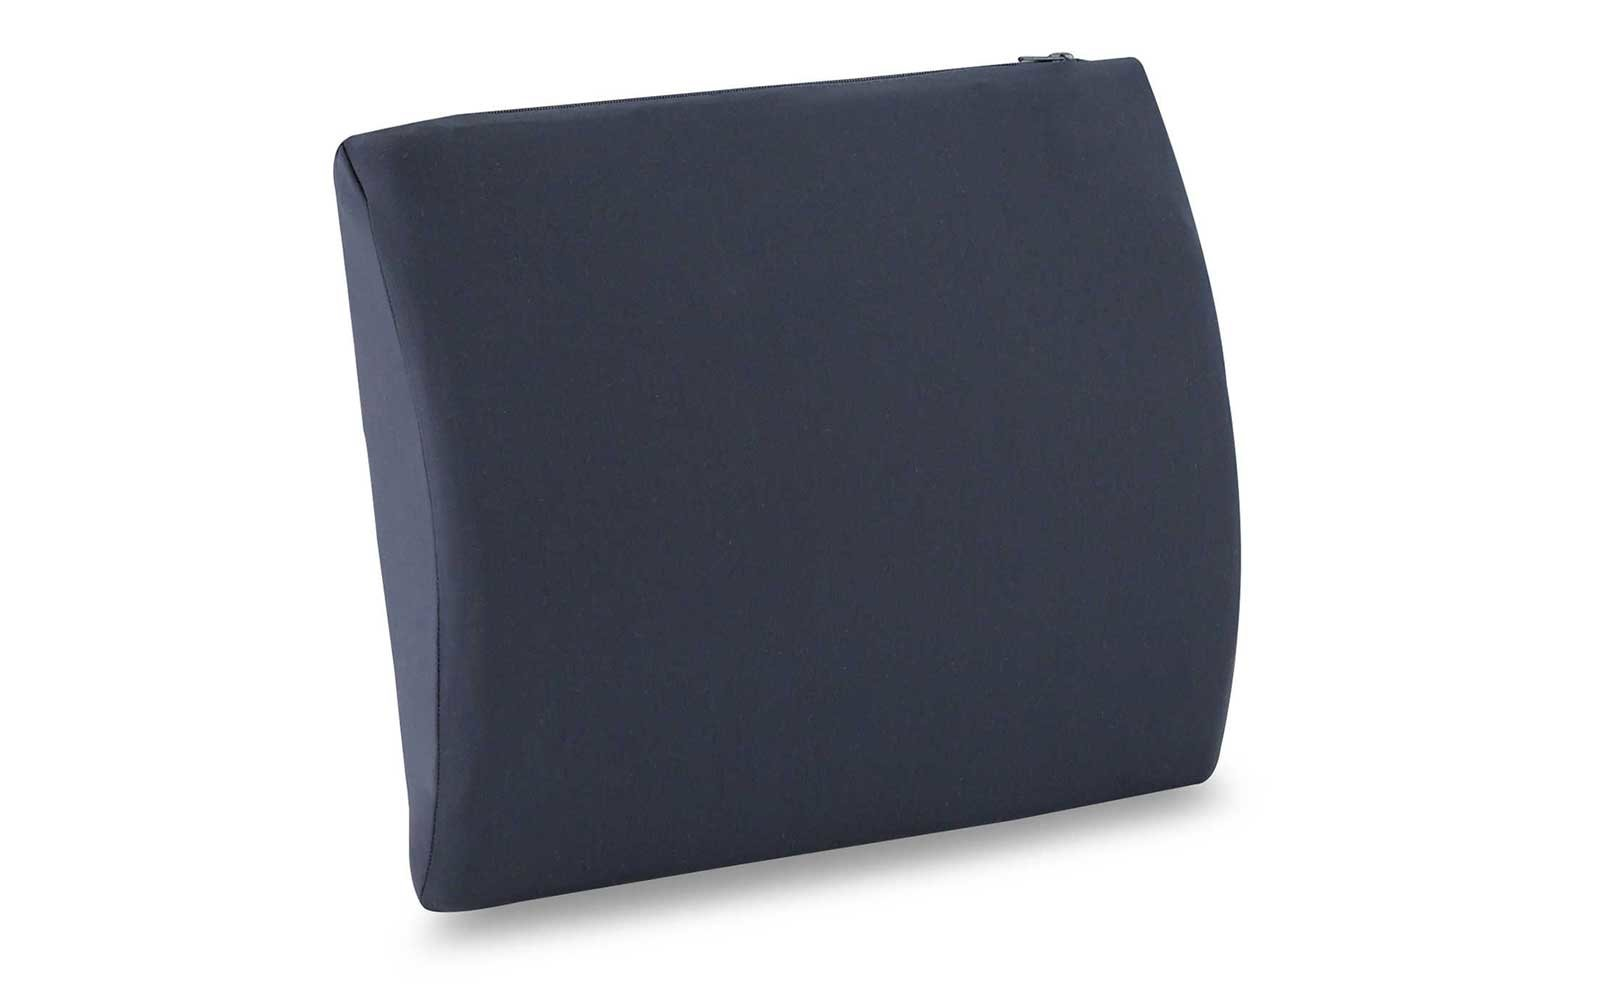 Tempur-Pedic Lumbar Pillow